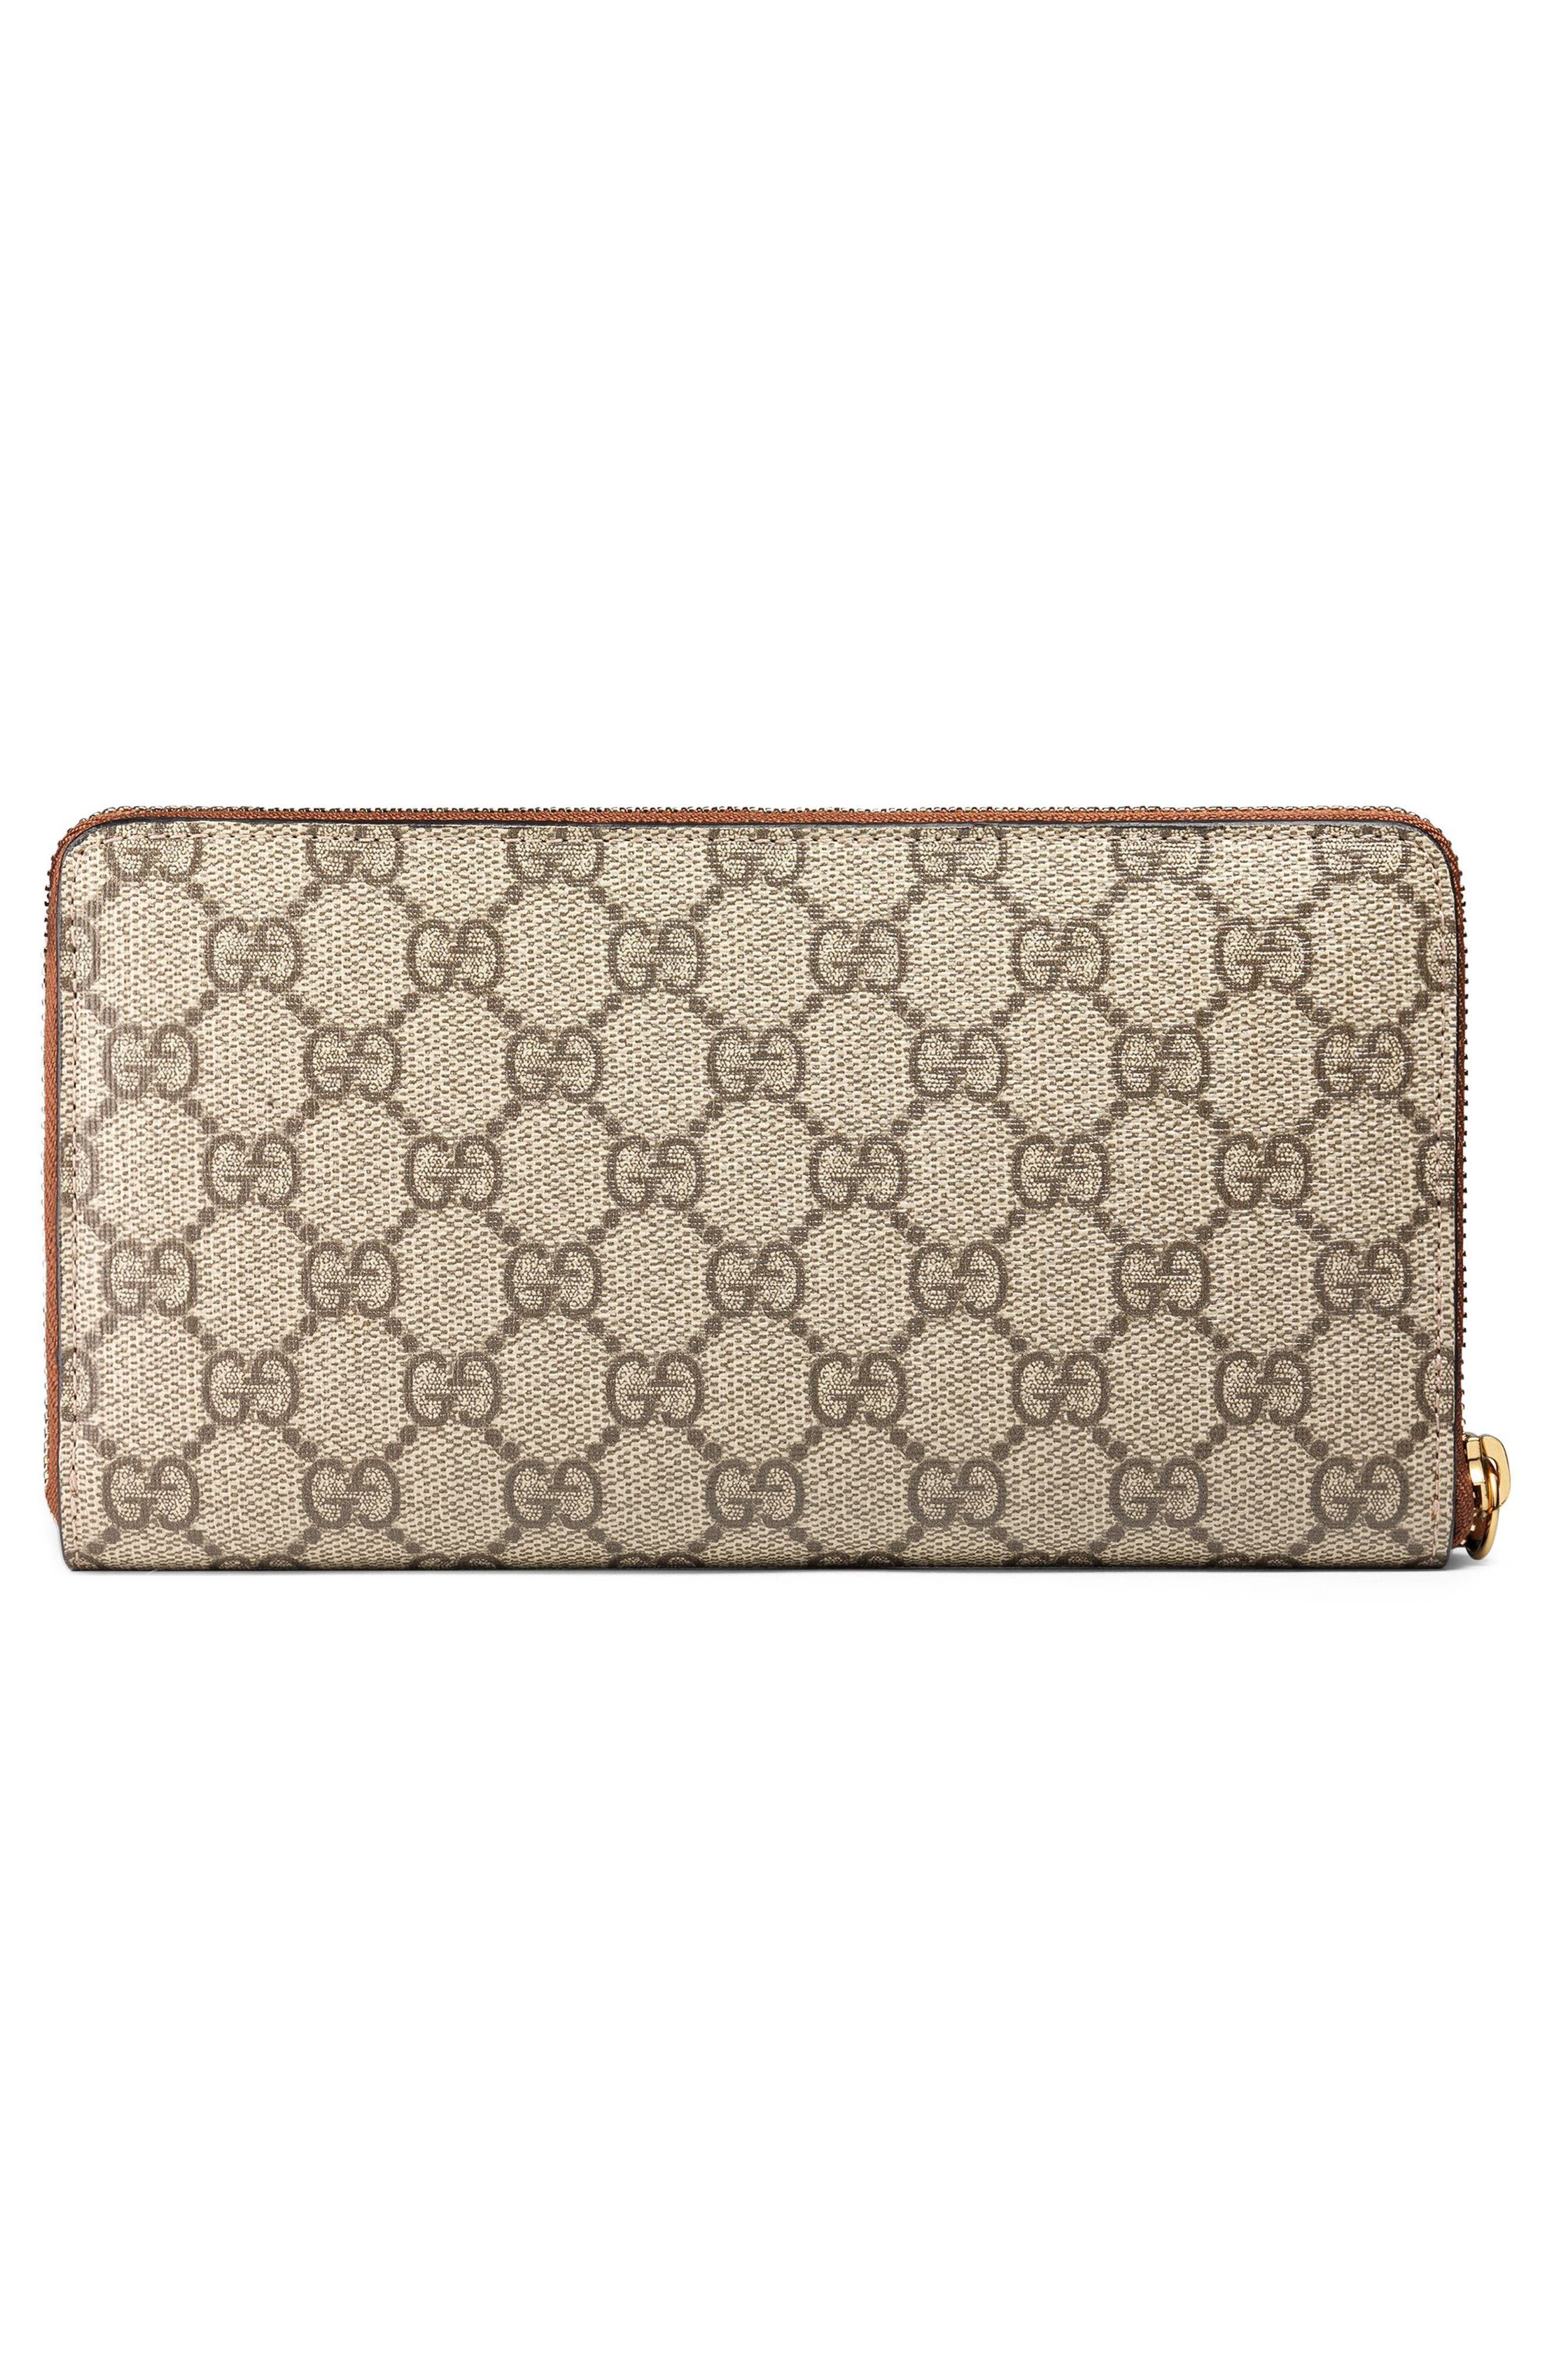 Linea GG Supreme Canvas Zip Around Wallet,                             Alternate thumbnail 3, color,                             BEIGE EBONY/ CUIR